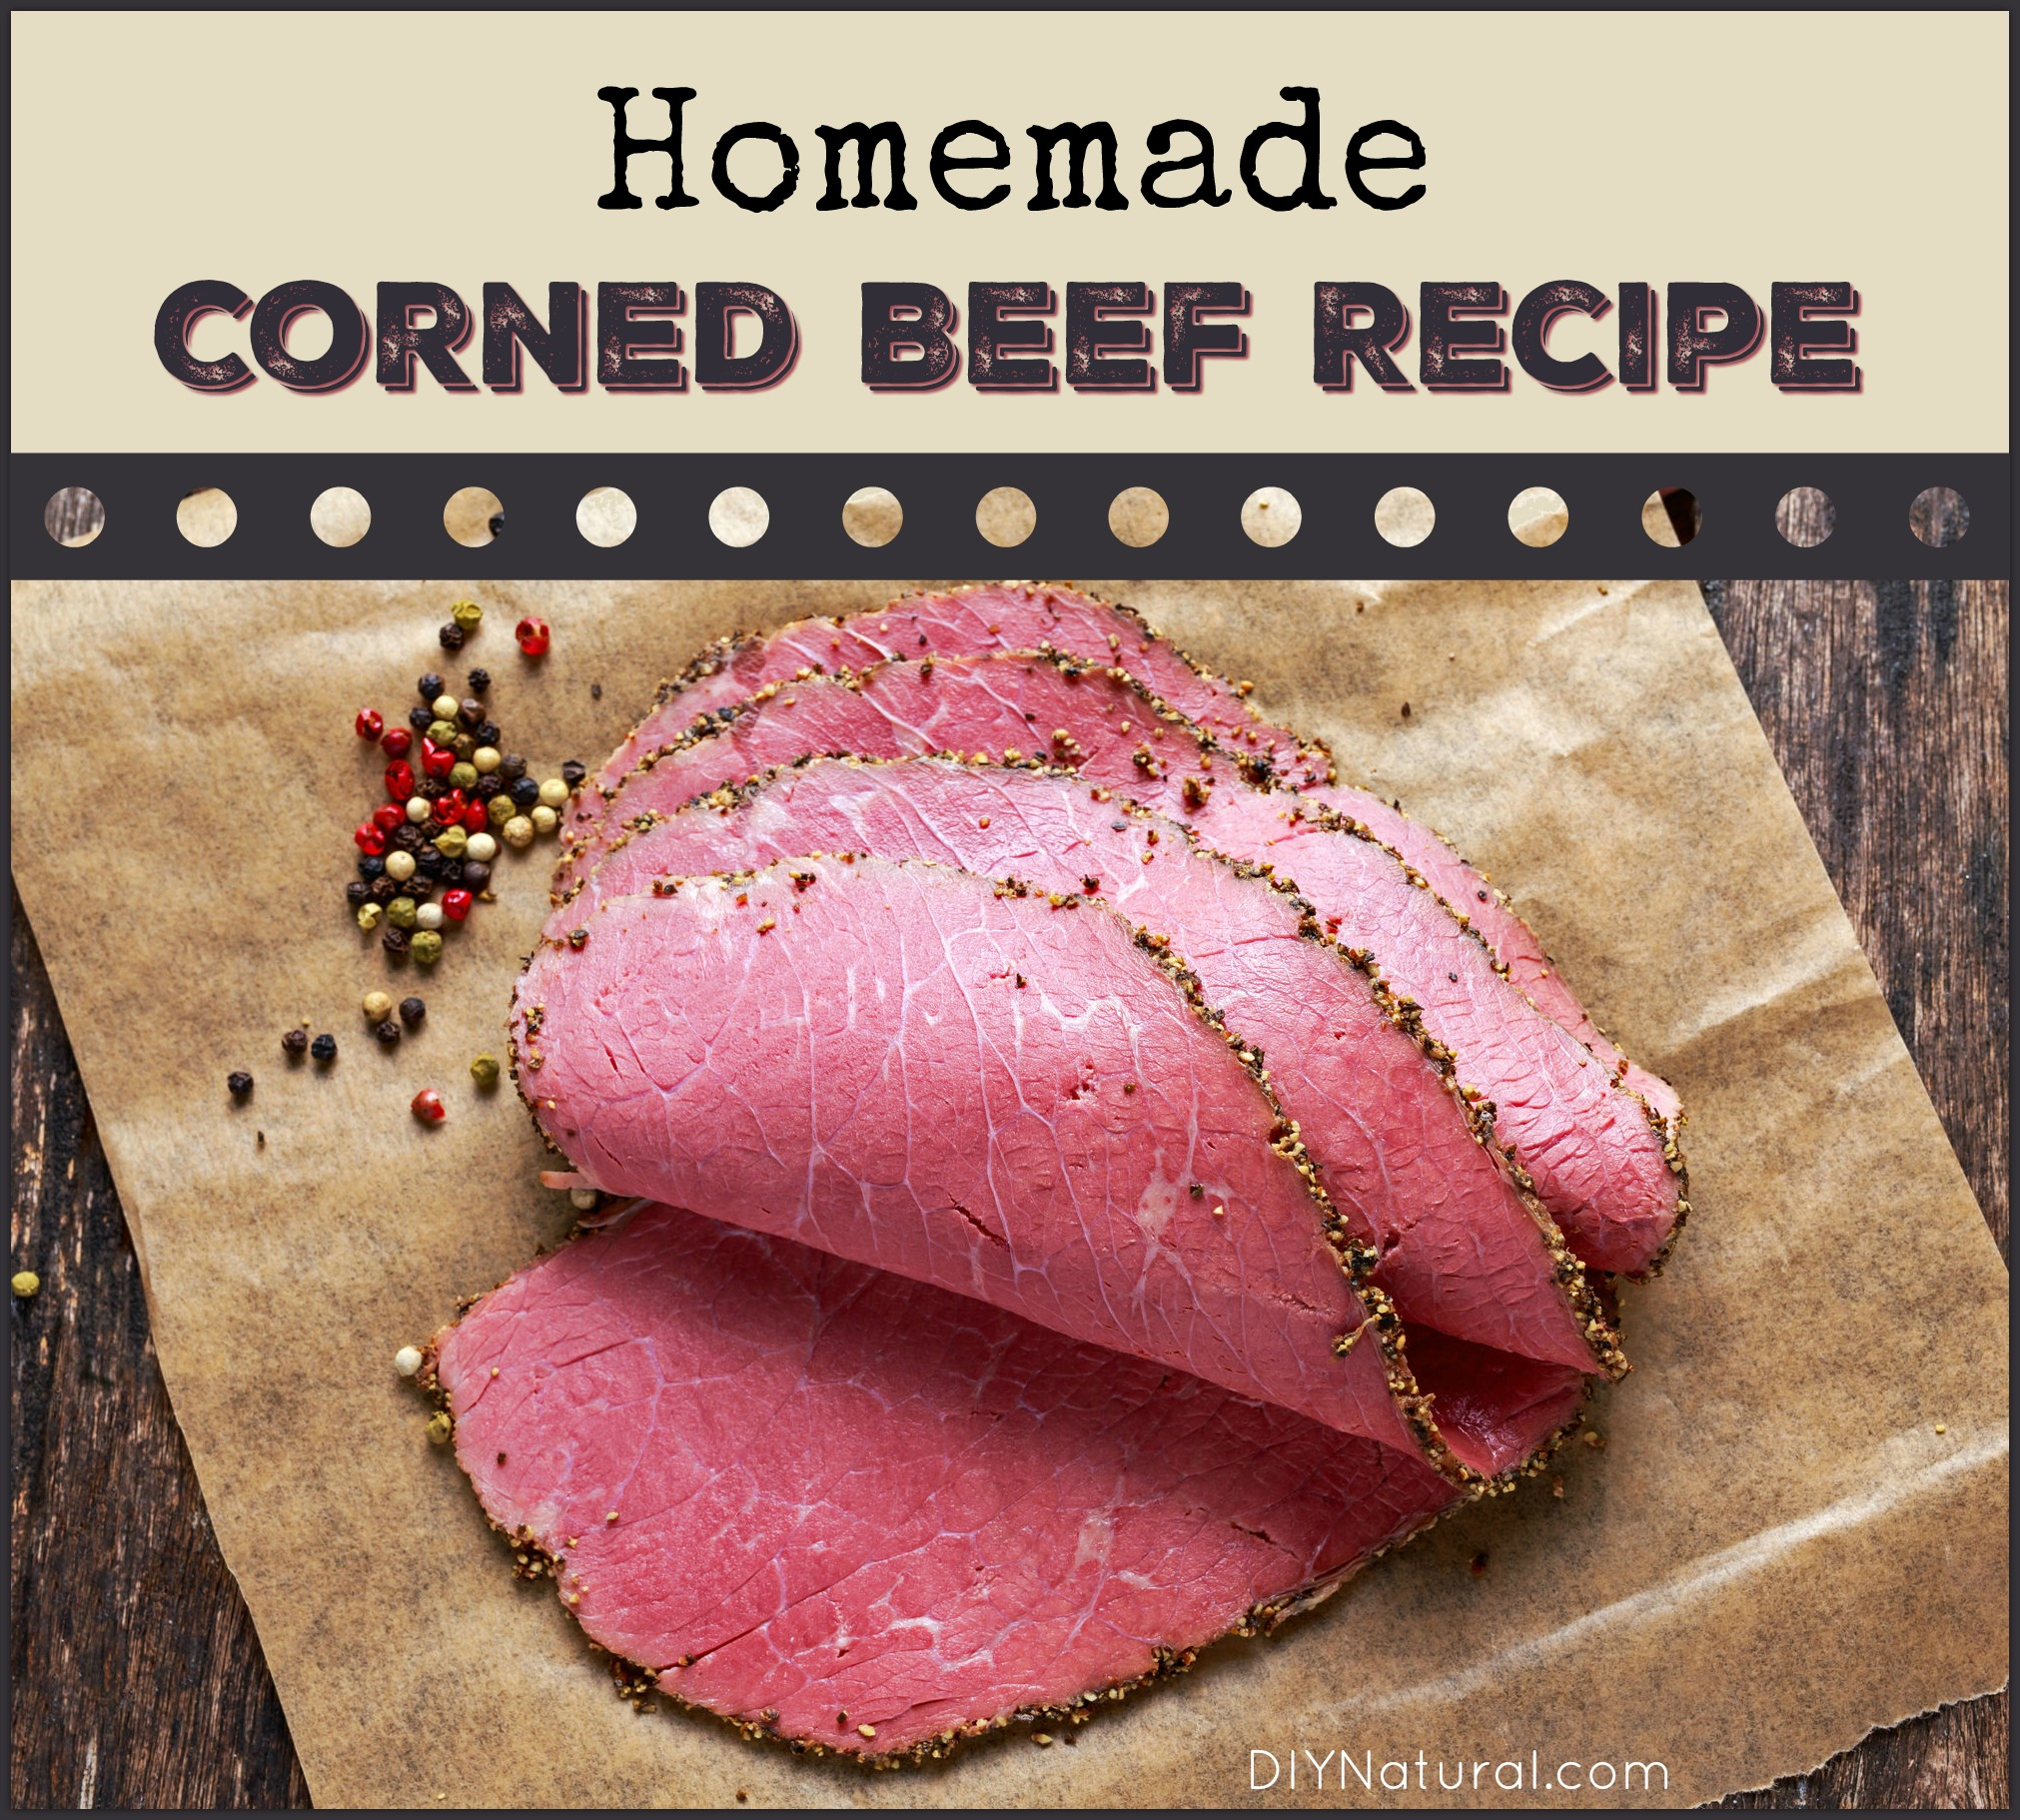 Homemade Corned Beef Recipe: A Natural Way To Make Corned Beef